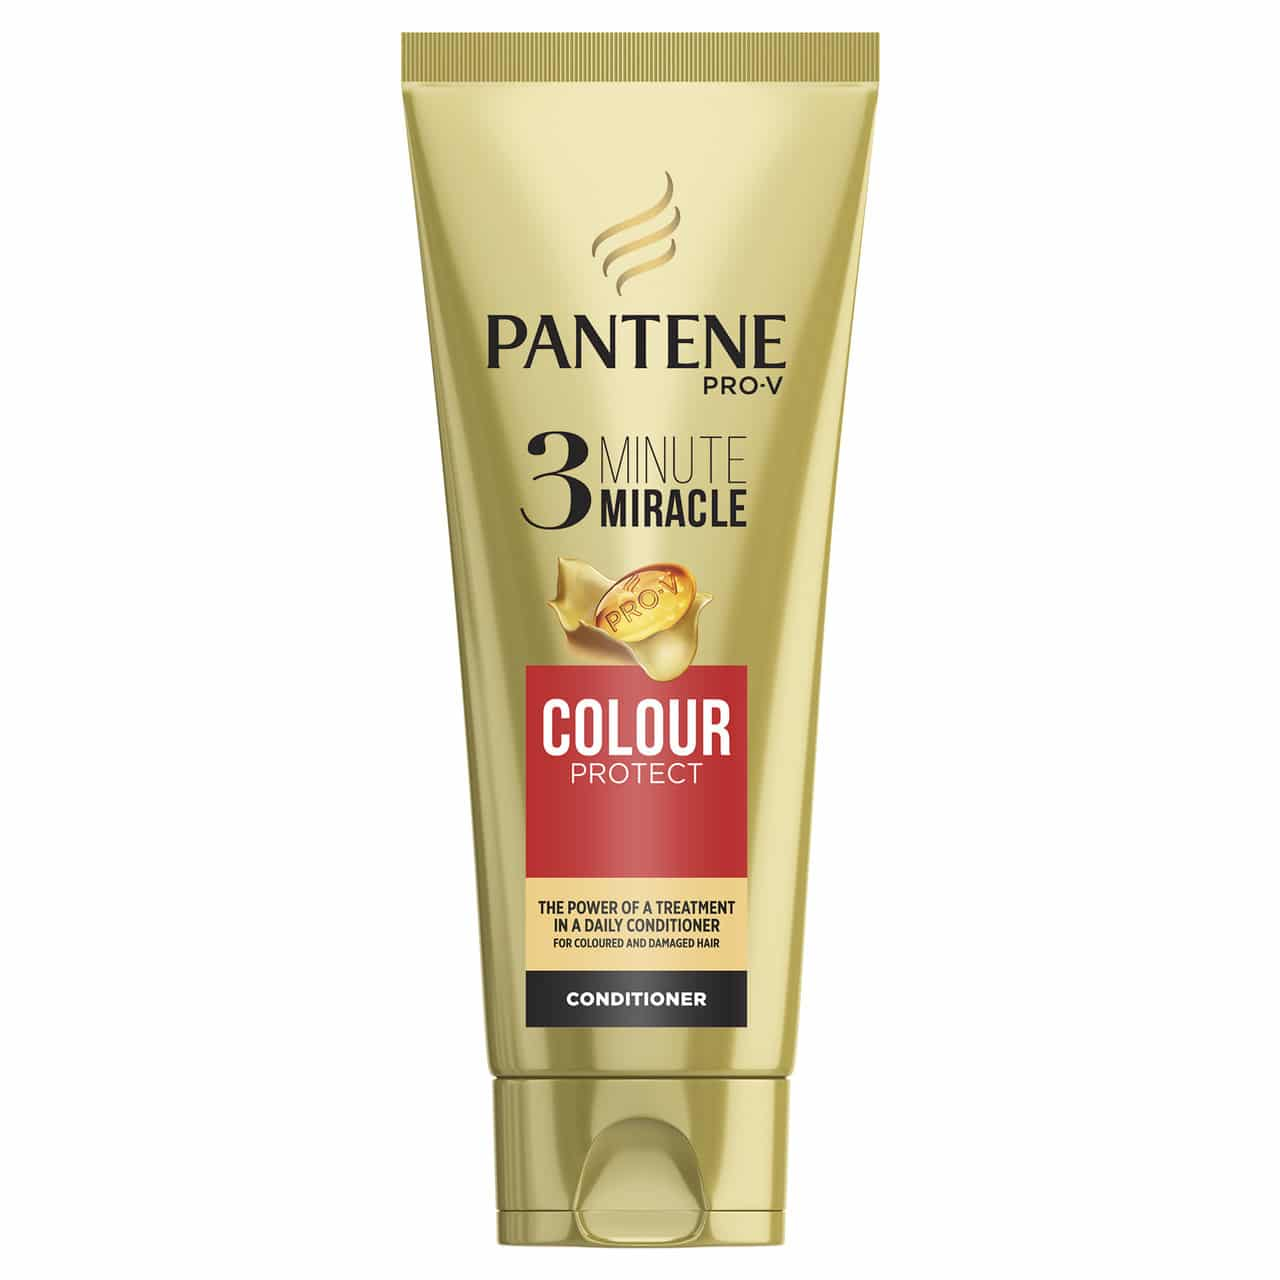 PANTENE 3 MINUTE MIRACLE CONDITIONER COLOUR PROTECT 200ML (NEW)